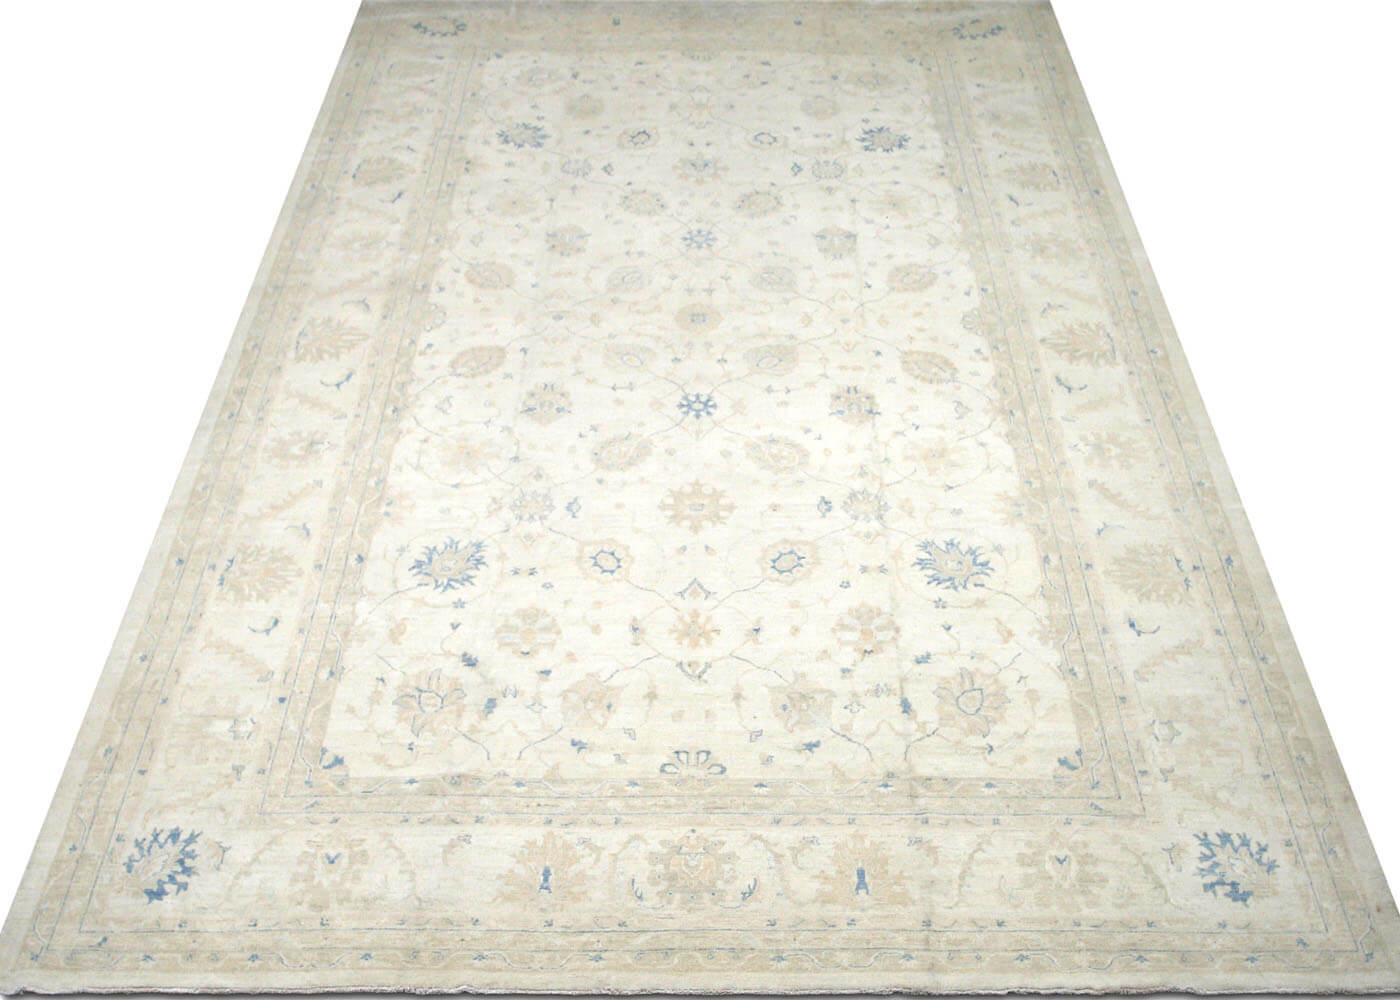 "Recently Woven Afghan Peshawar Carpet - 11'8"" x 18'2"""